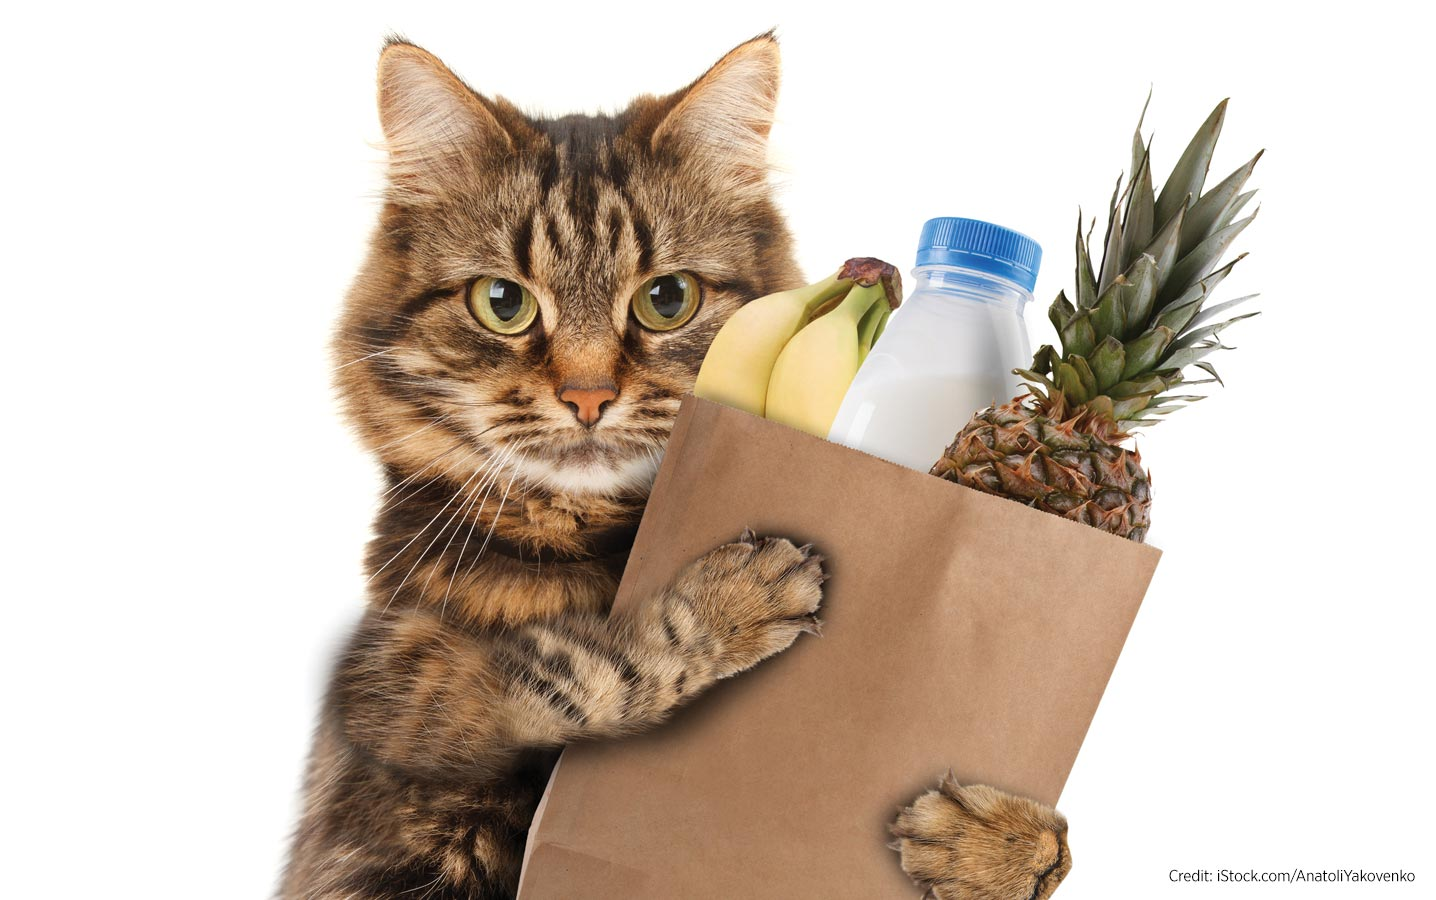 Photo of a cat holding a bag of groceries